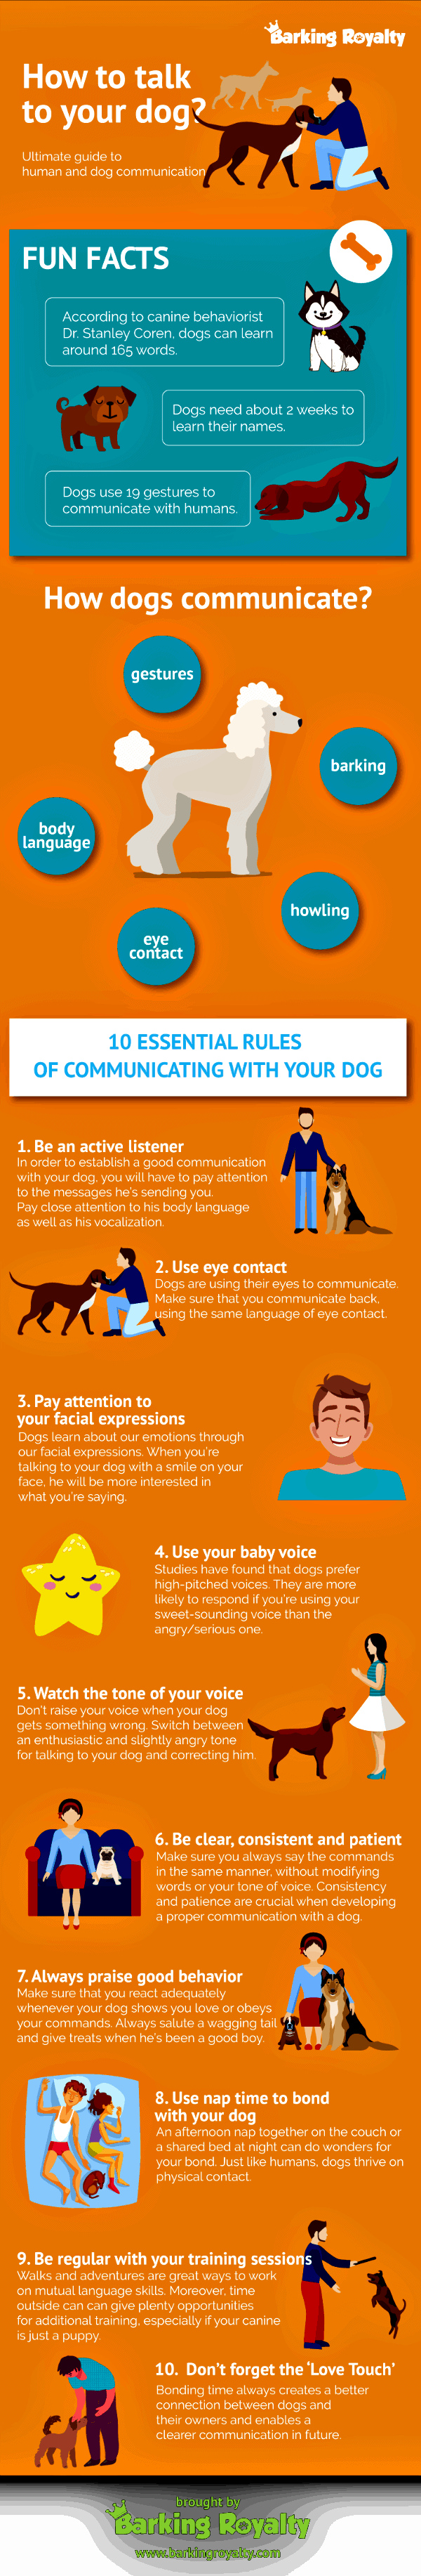 dog communication